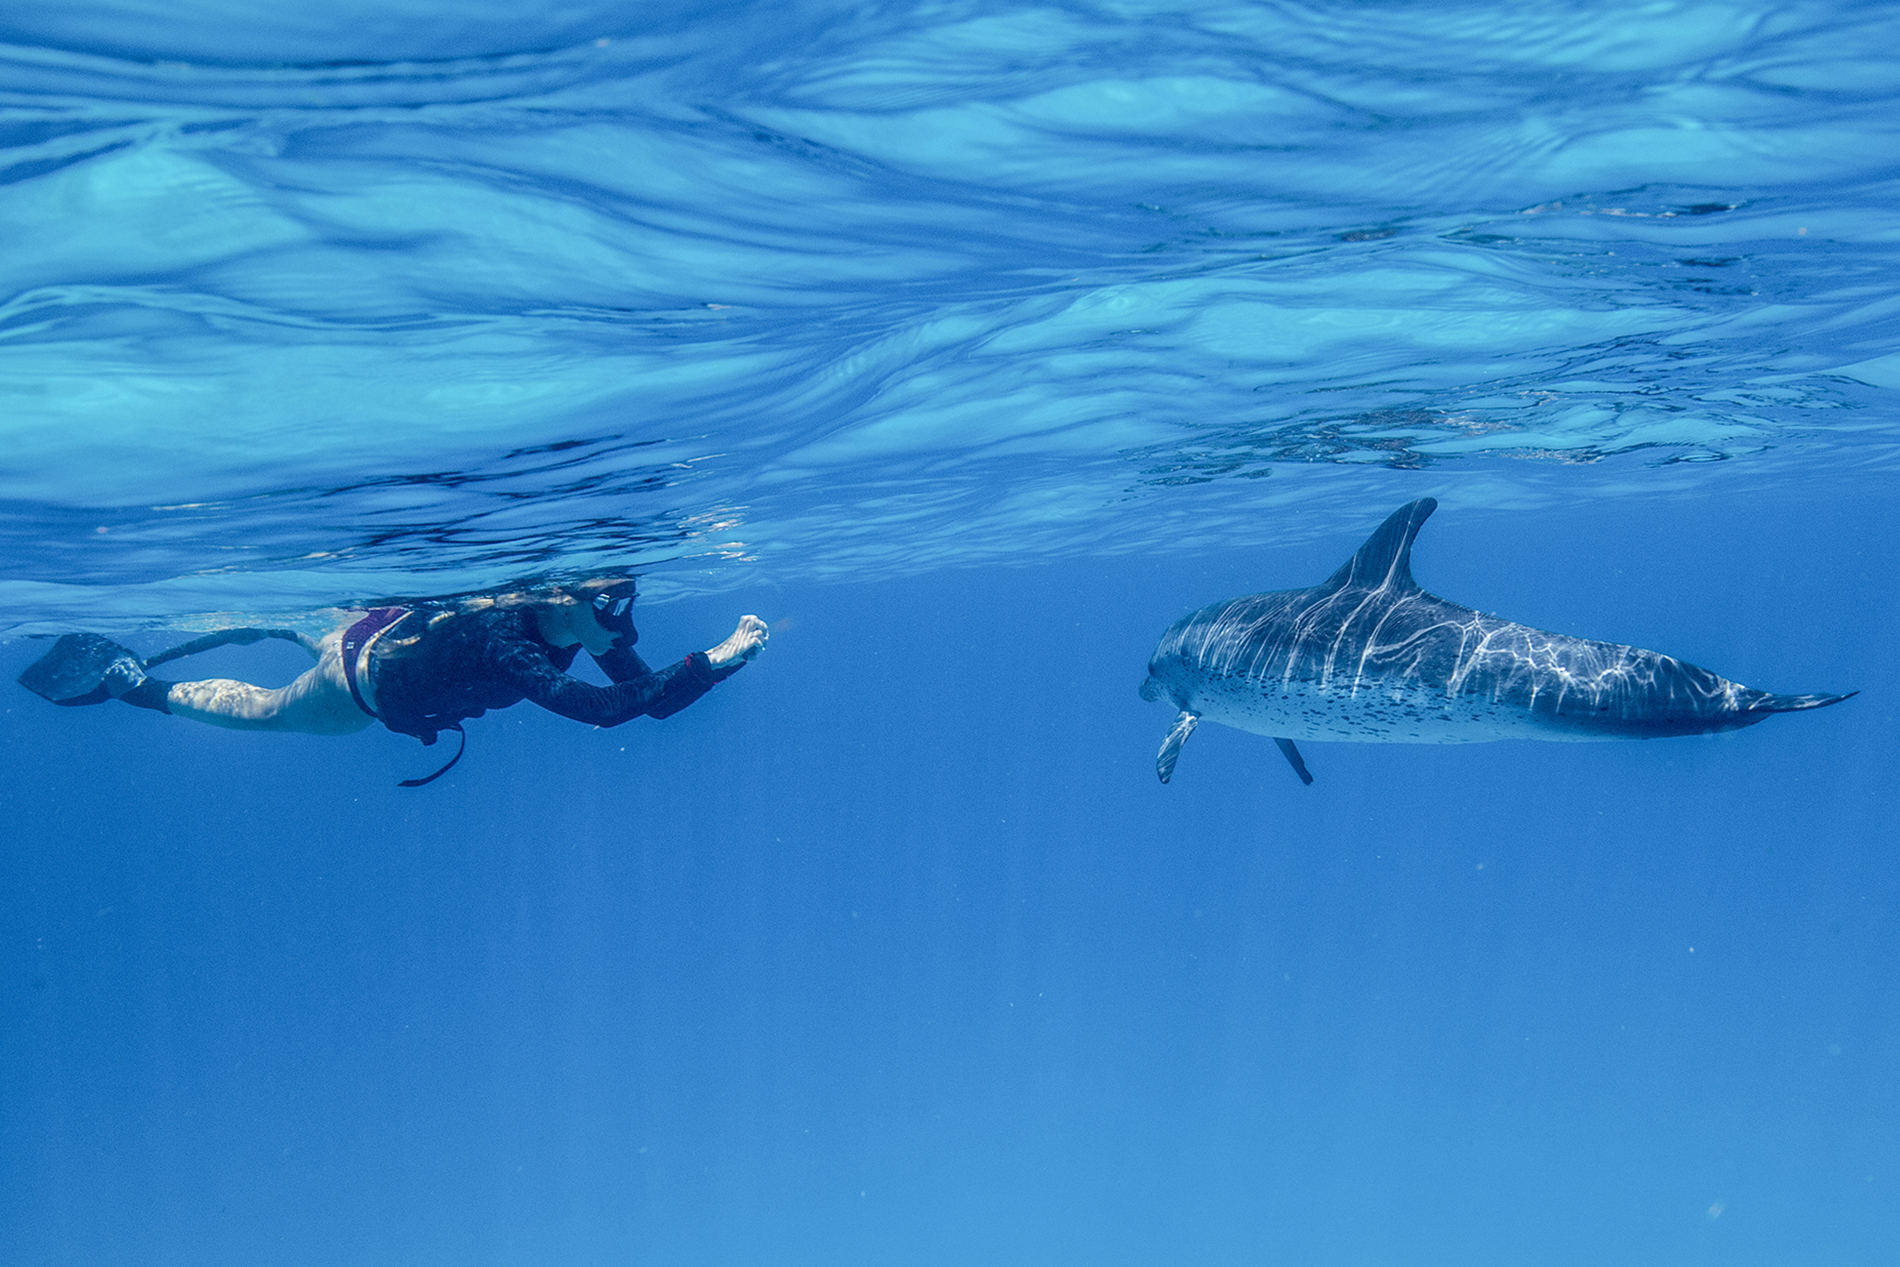 a young girl takes a picture of an Atlantic spotted dolphin underwater